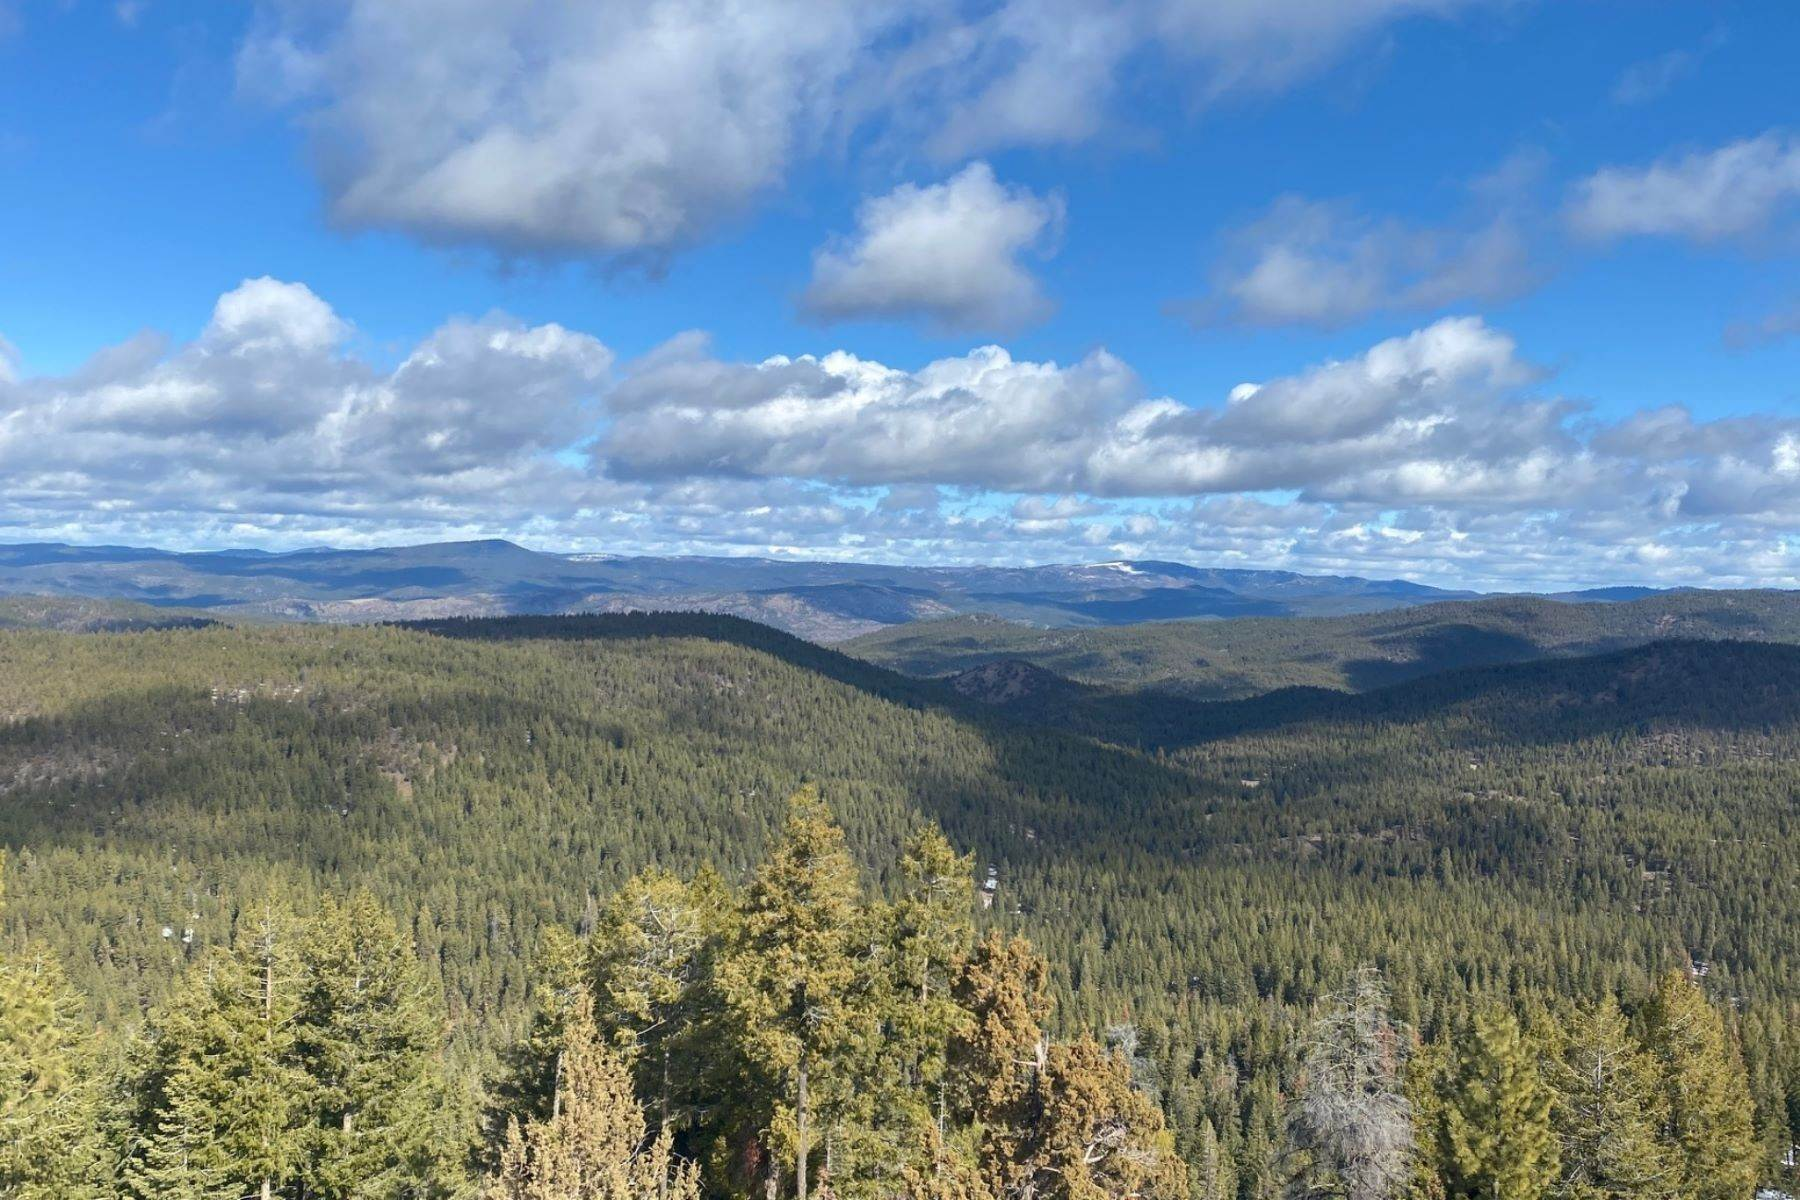 Property for Sale at 27850 NE Old Wolf Creek Road Prineville, OR 97754 27850 NE Old Wolf Creek Road Prineville, Oregon 97754 United States